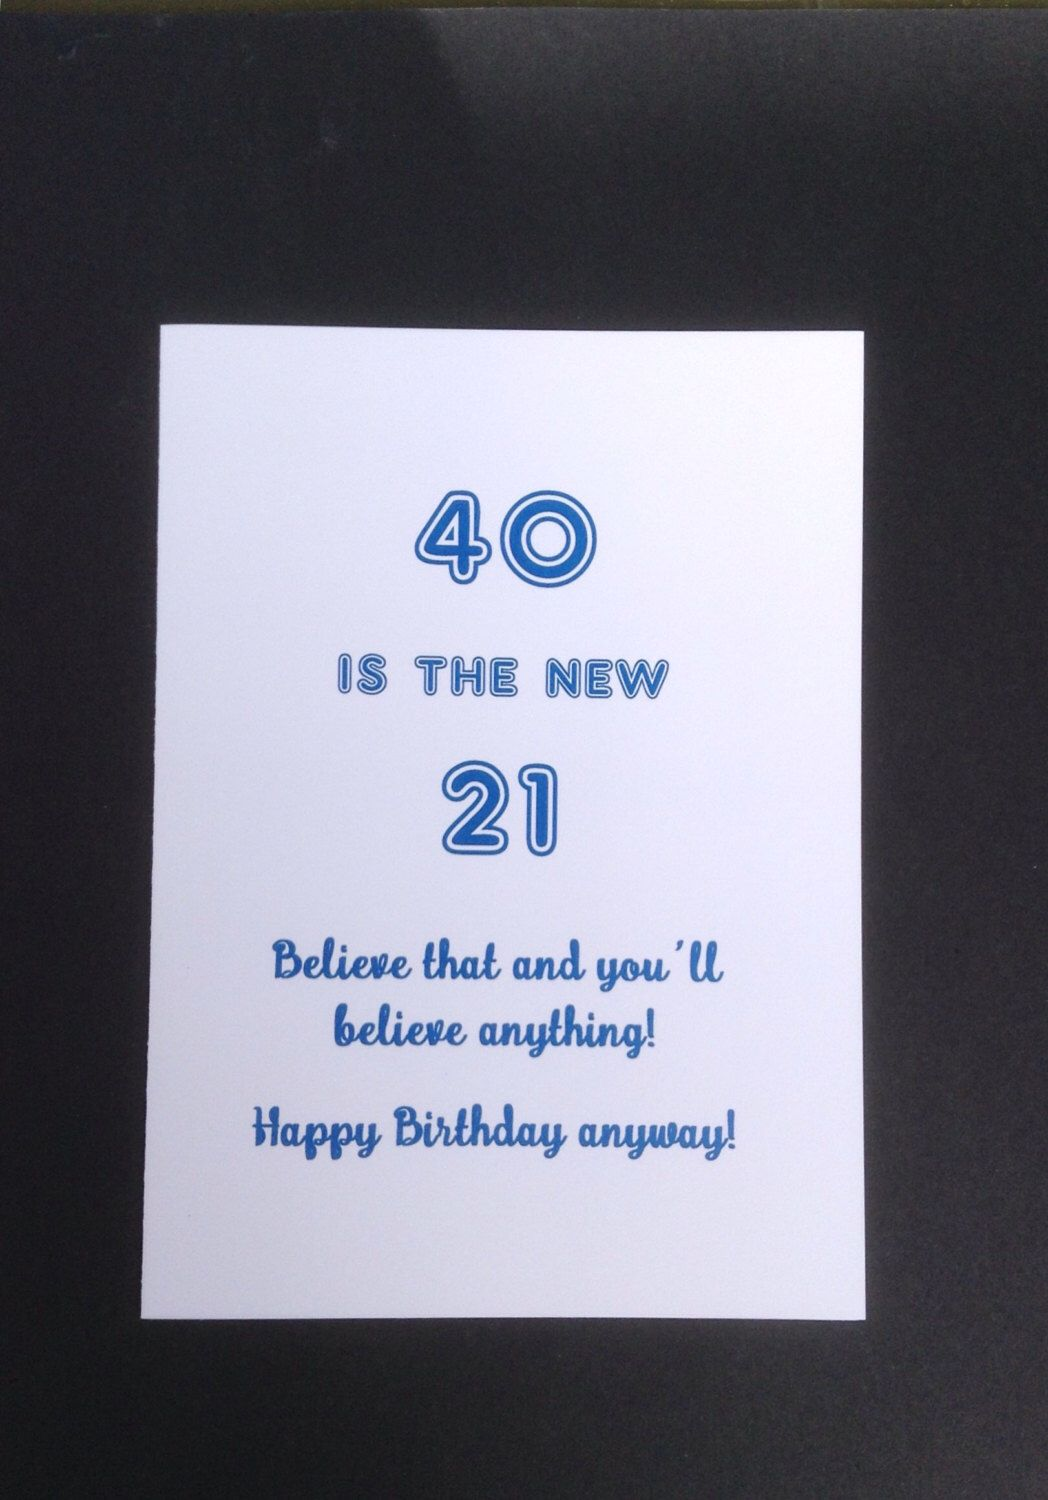 40th Birthday Cards Funny For Milestone Card 40thbirthdaycards Funny40thcards Milestonebirthdaycards